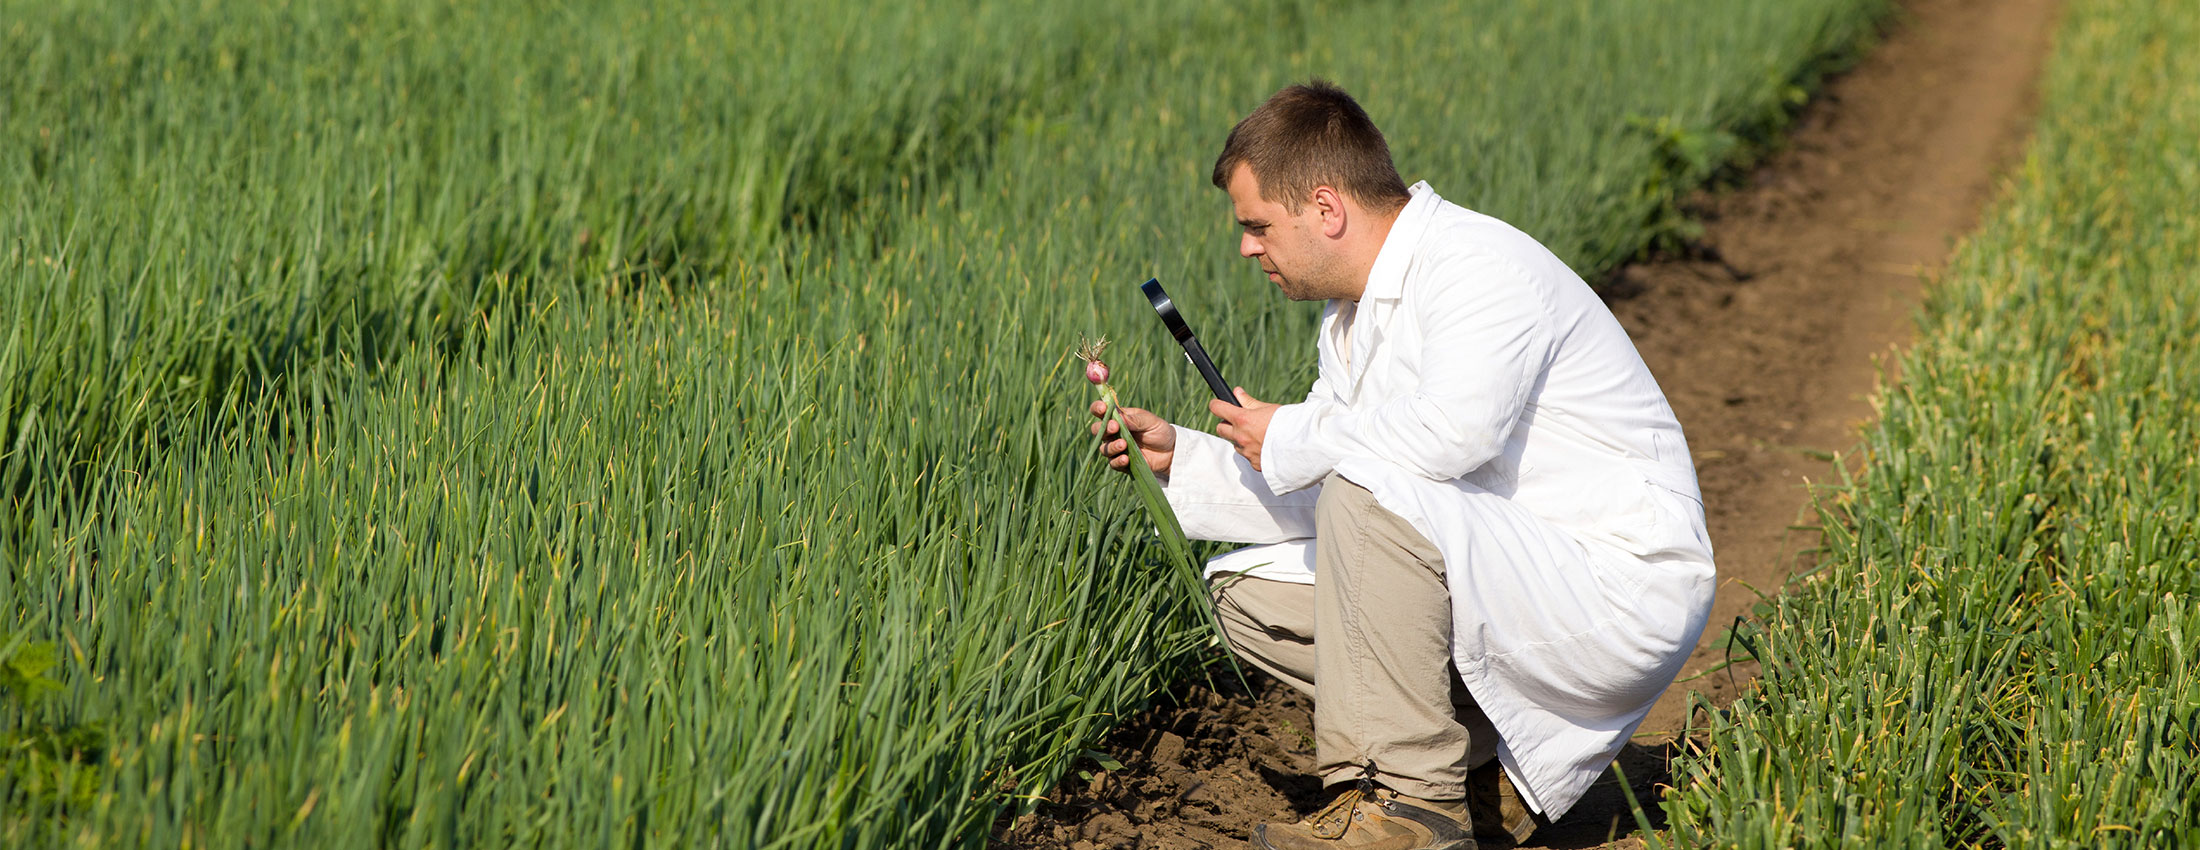 Super Cool Tools – Less Guesswork when Monitoring Plant and Soil Health